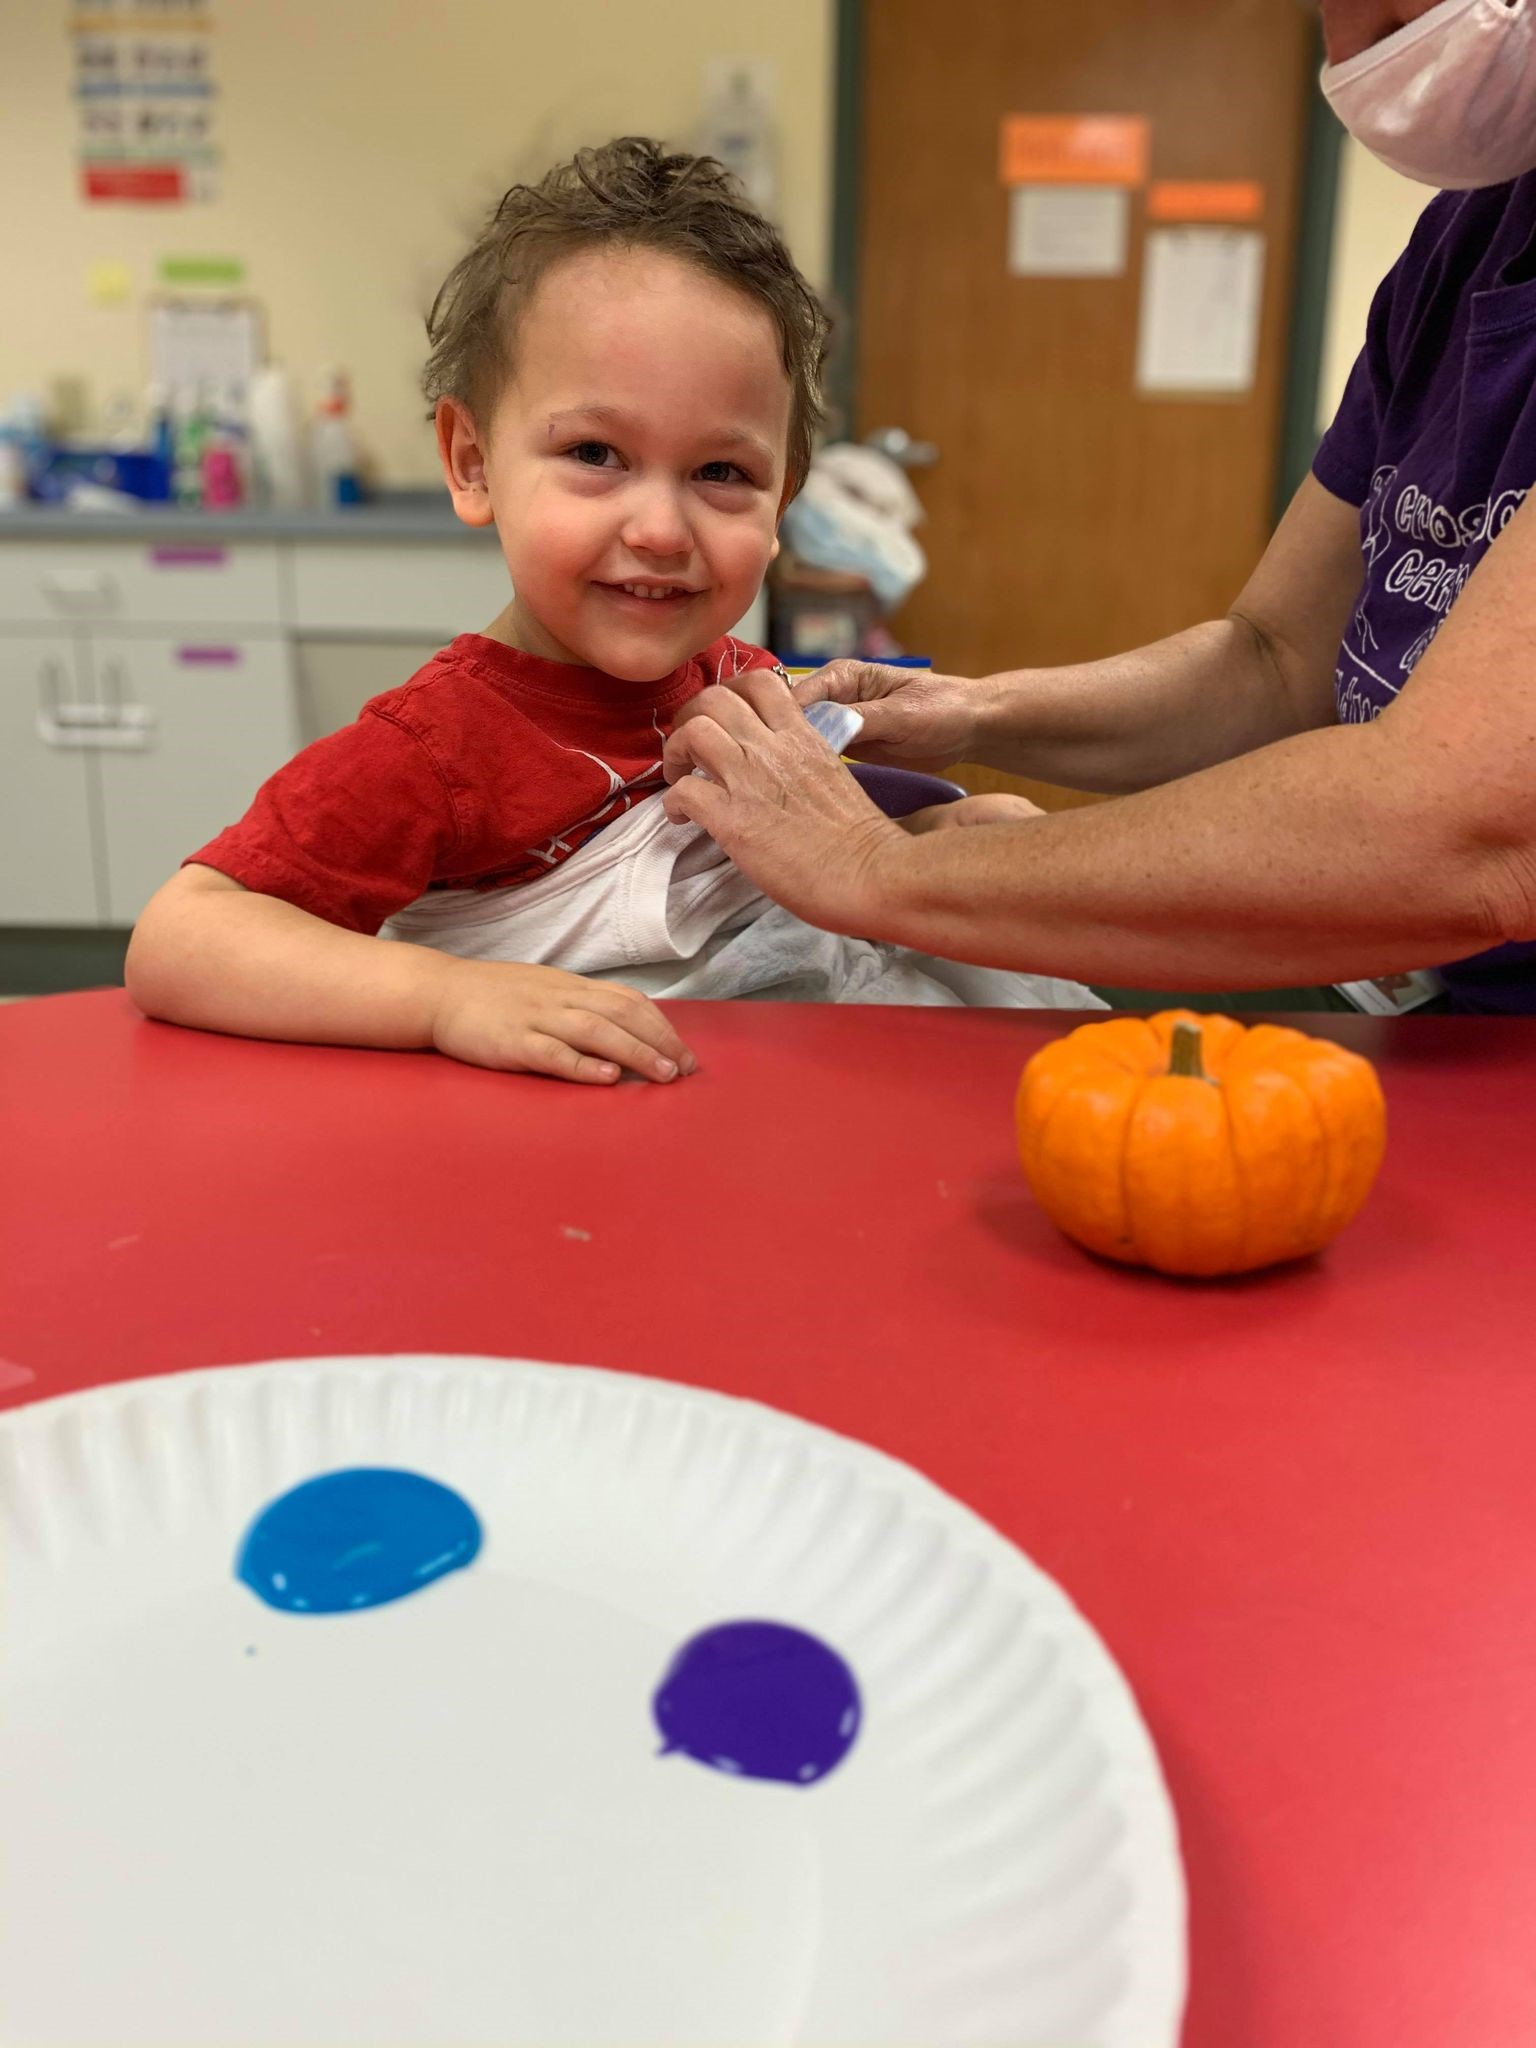 Integrating Art Projects Into Classroom Themes Crossroads Center For Children